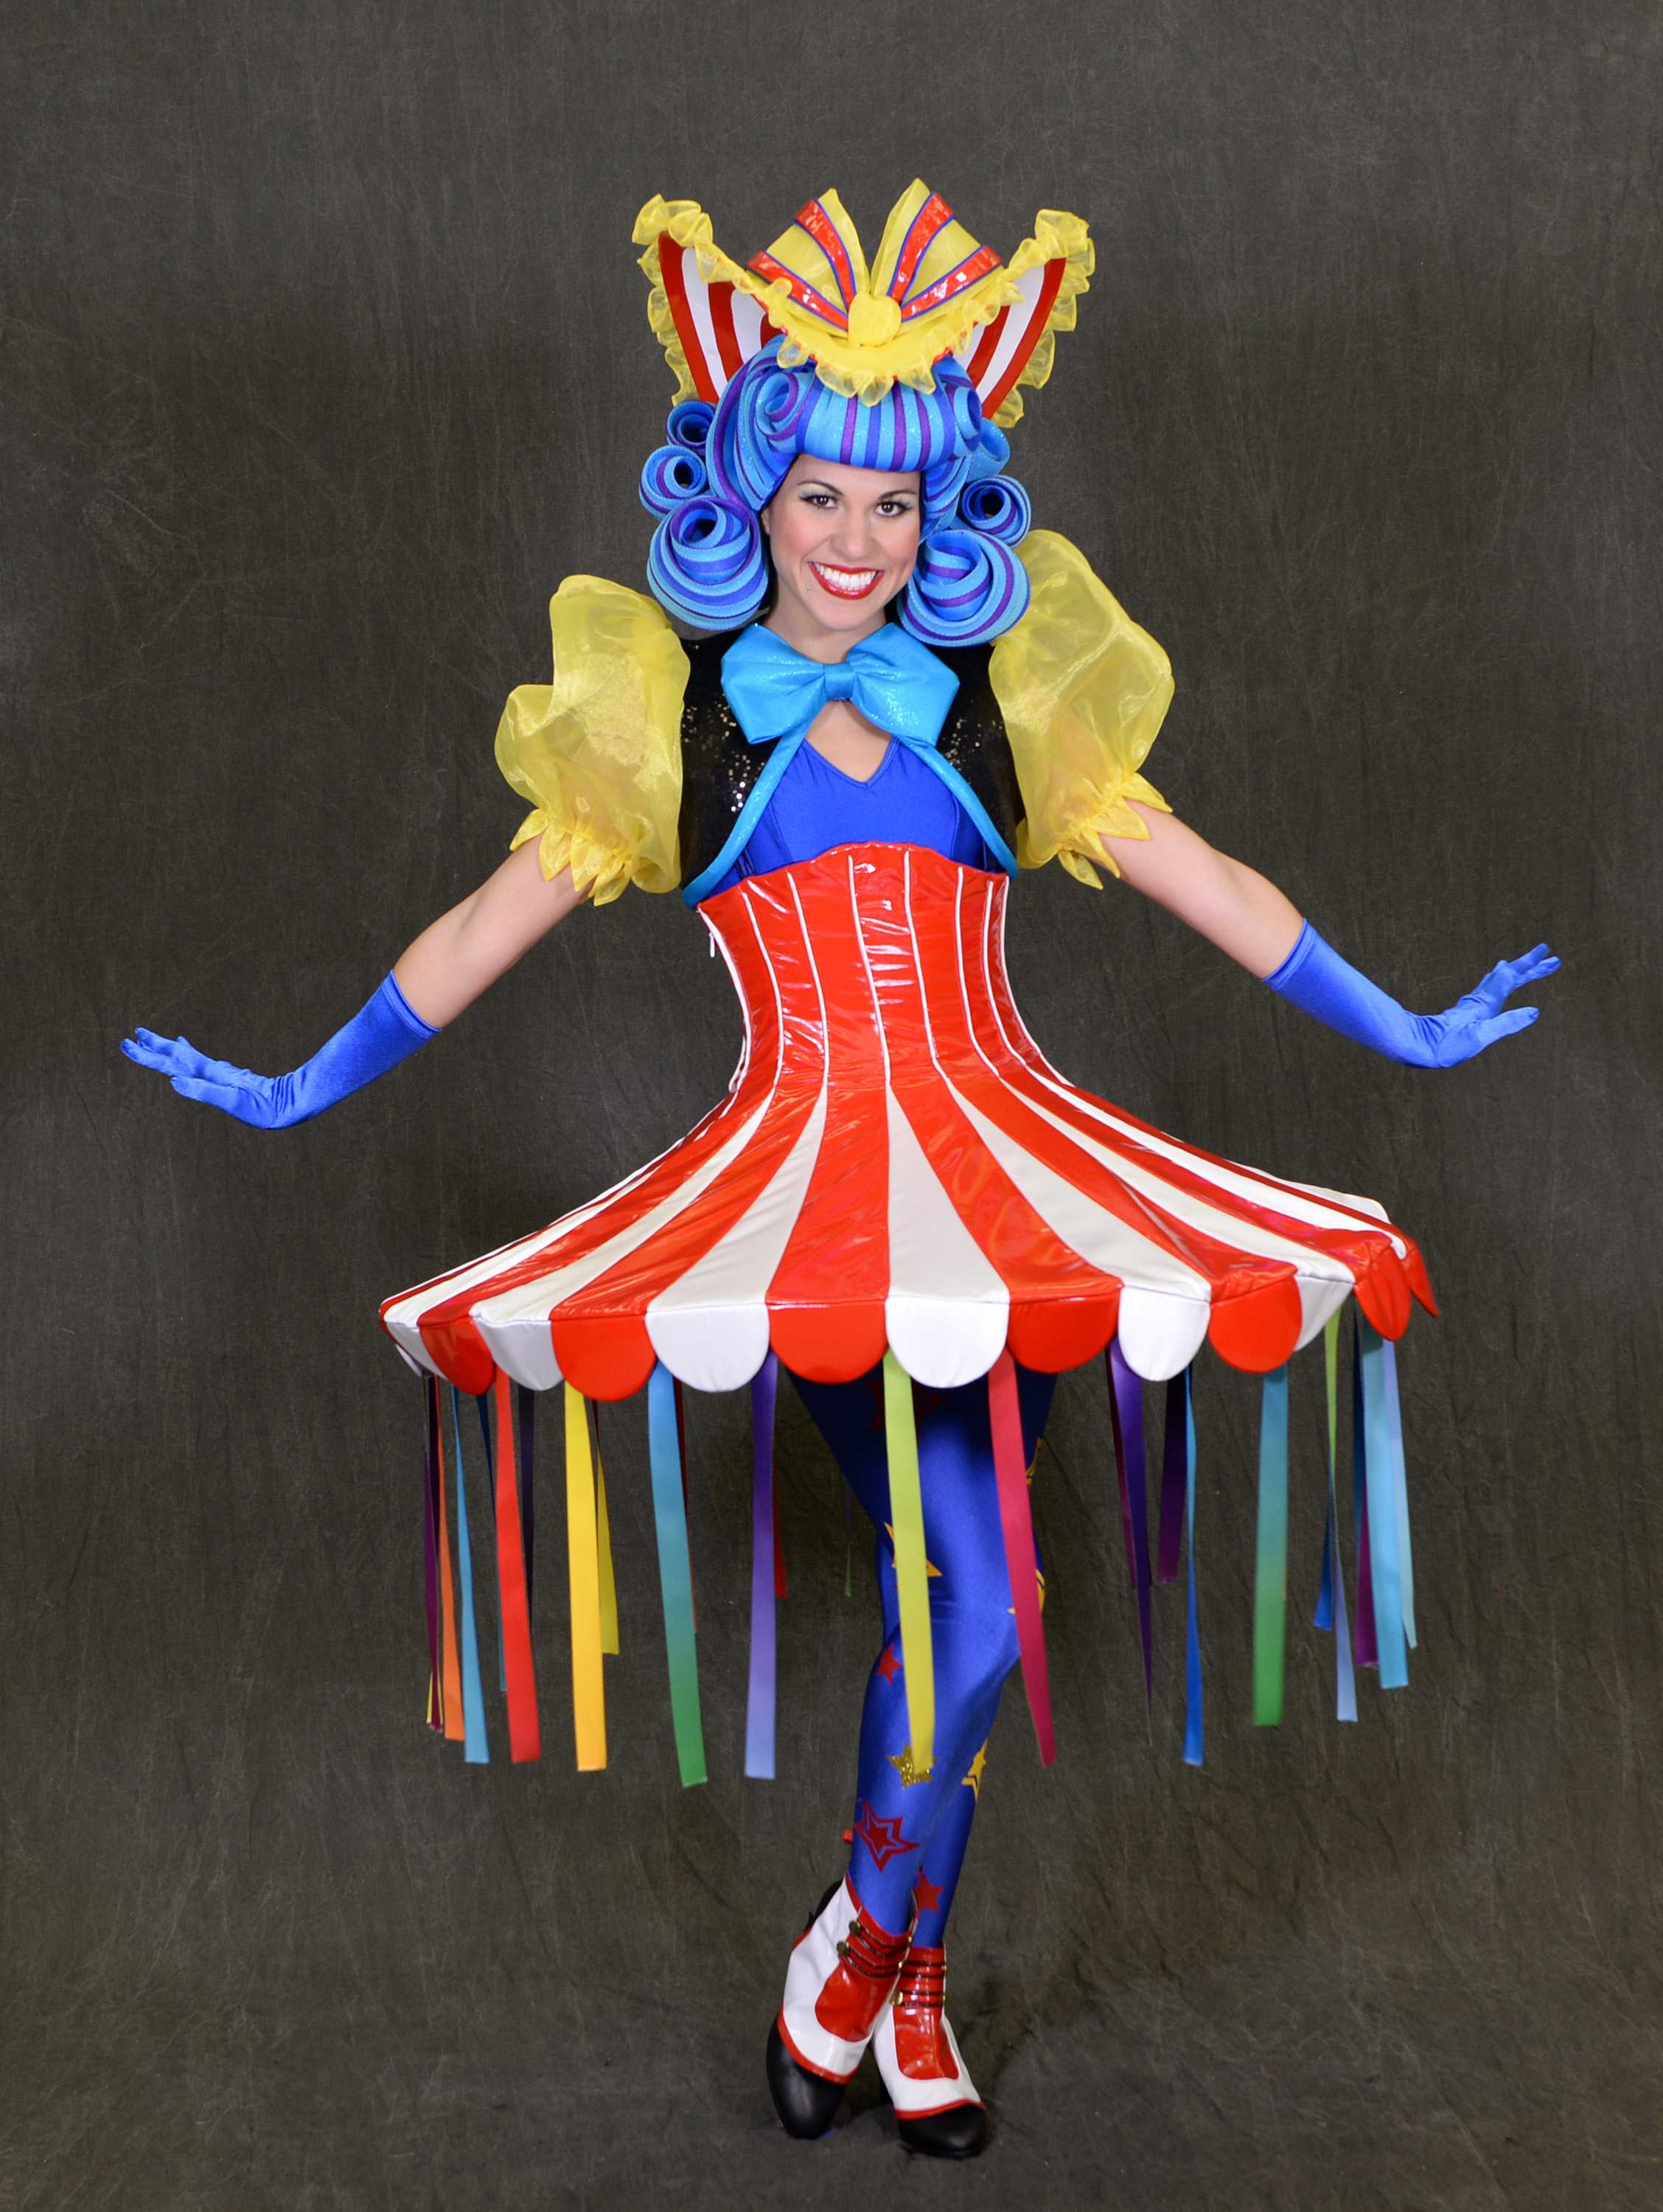 Disney Festival of Fantasy Parade Costumes - Cha Cha Girl